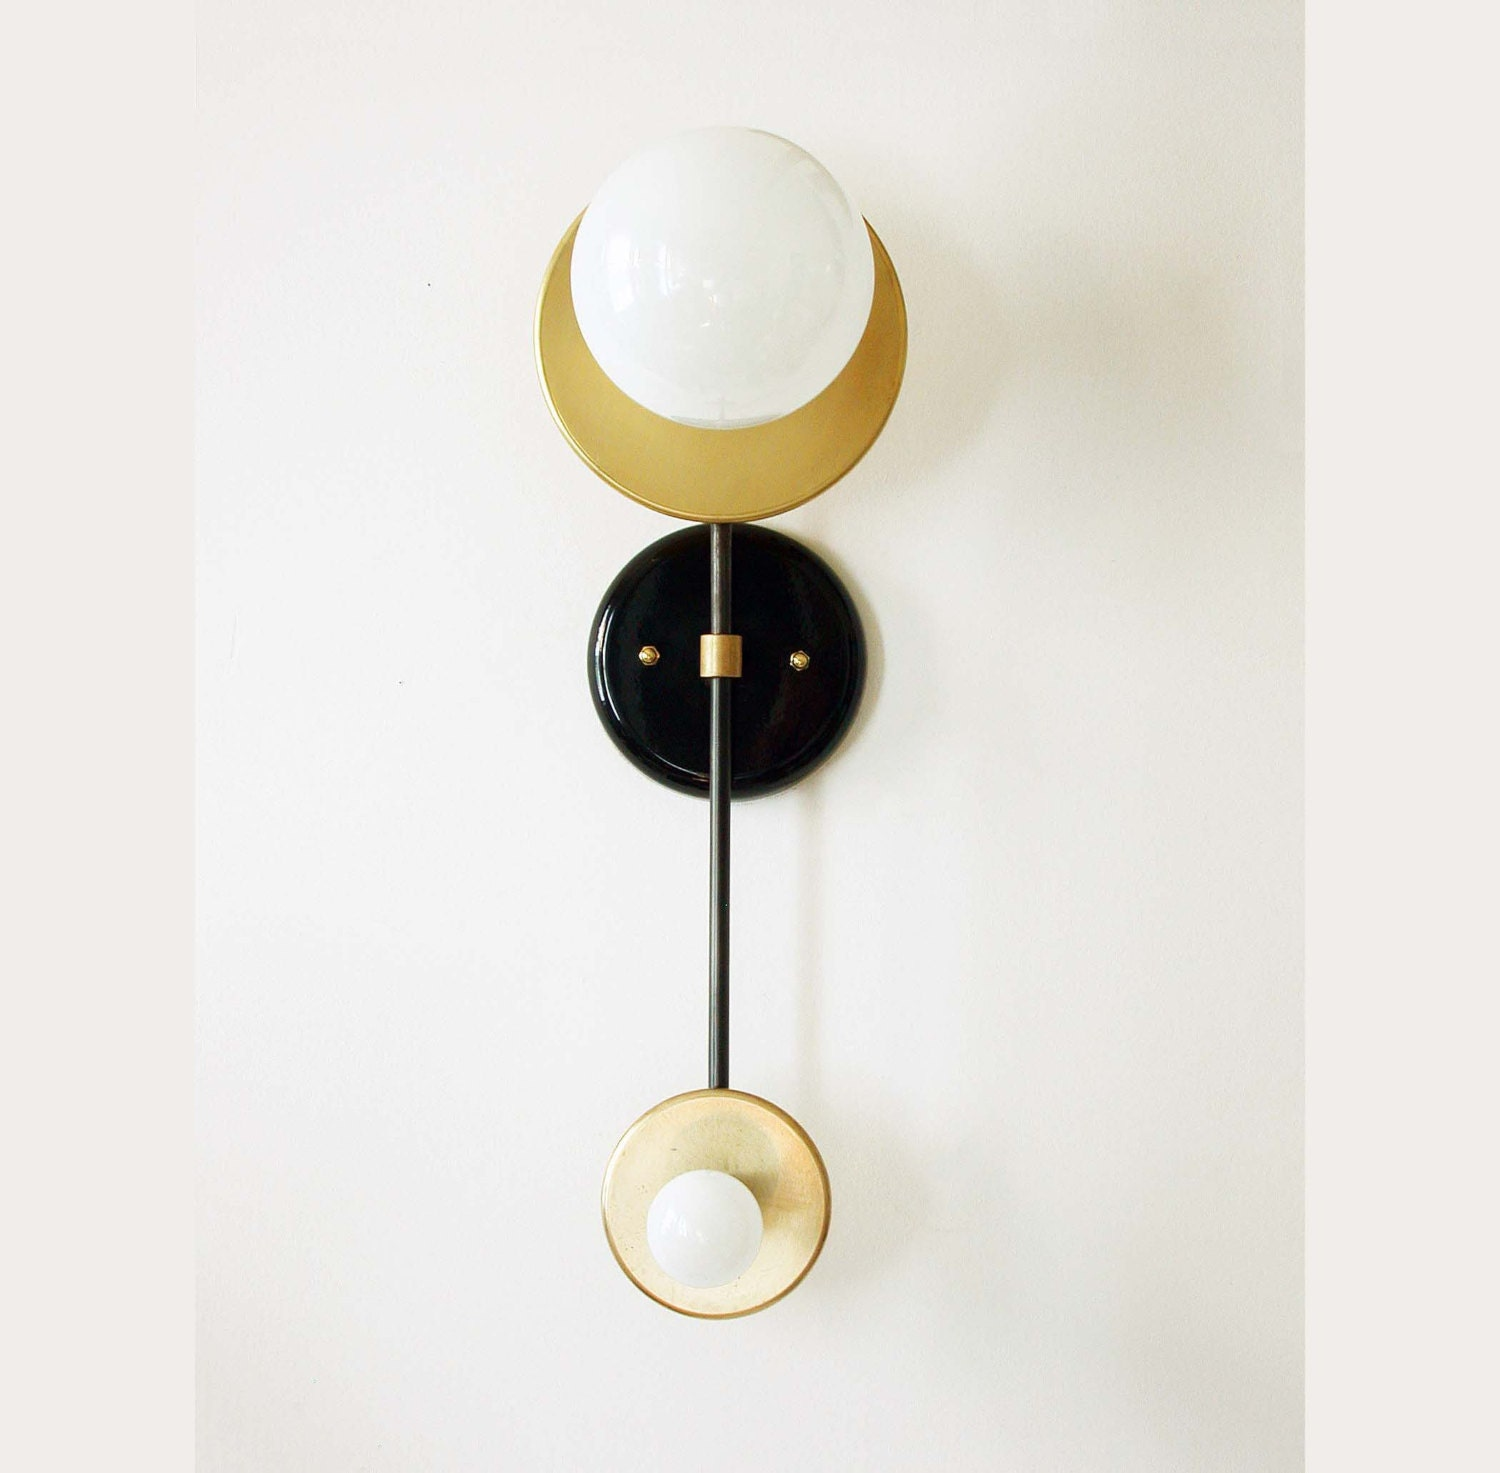 Brass Wall Sconces Lighting : Double Wall Brass Sconce Lamp Wall Light Fixture Bedroom